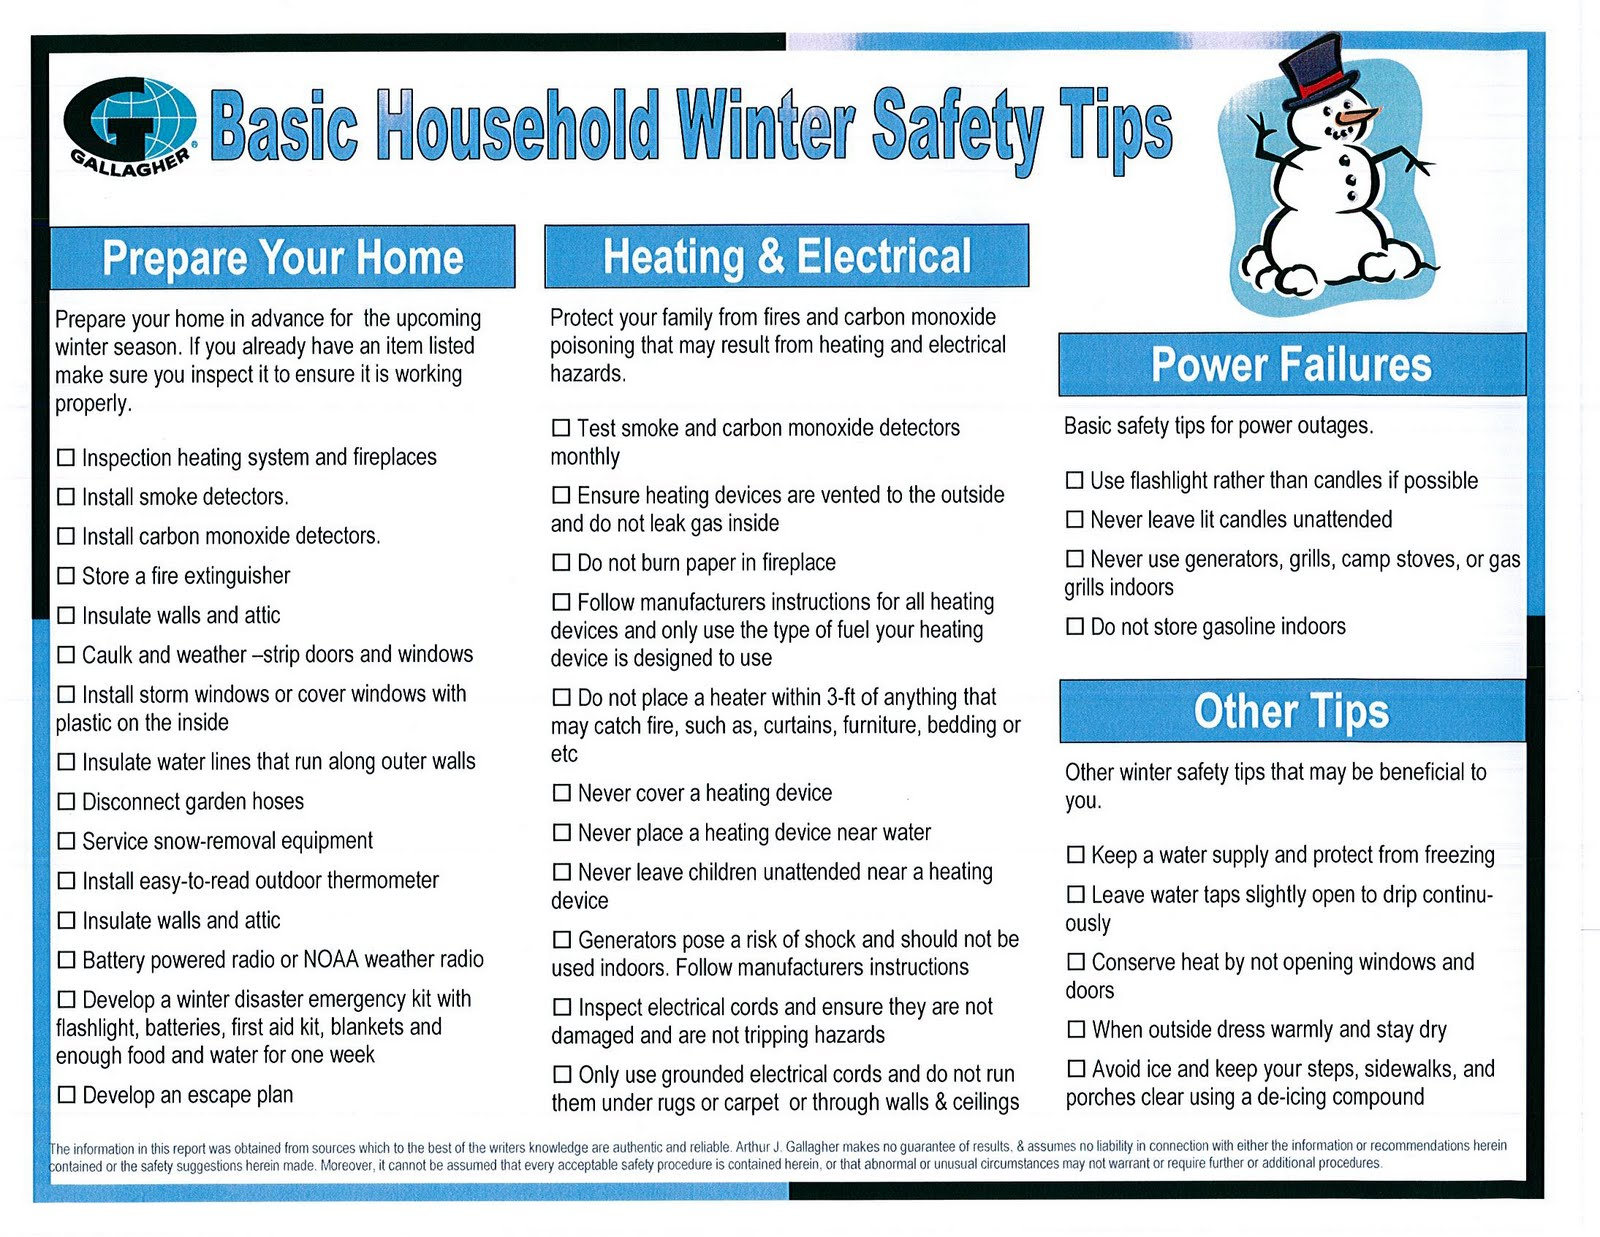 Acm Blog Basic Household Winter Safety Tips From Arthur J